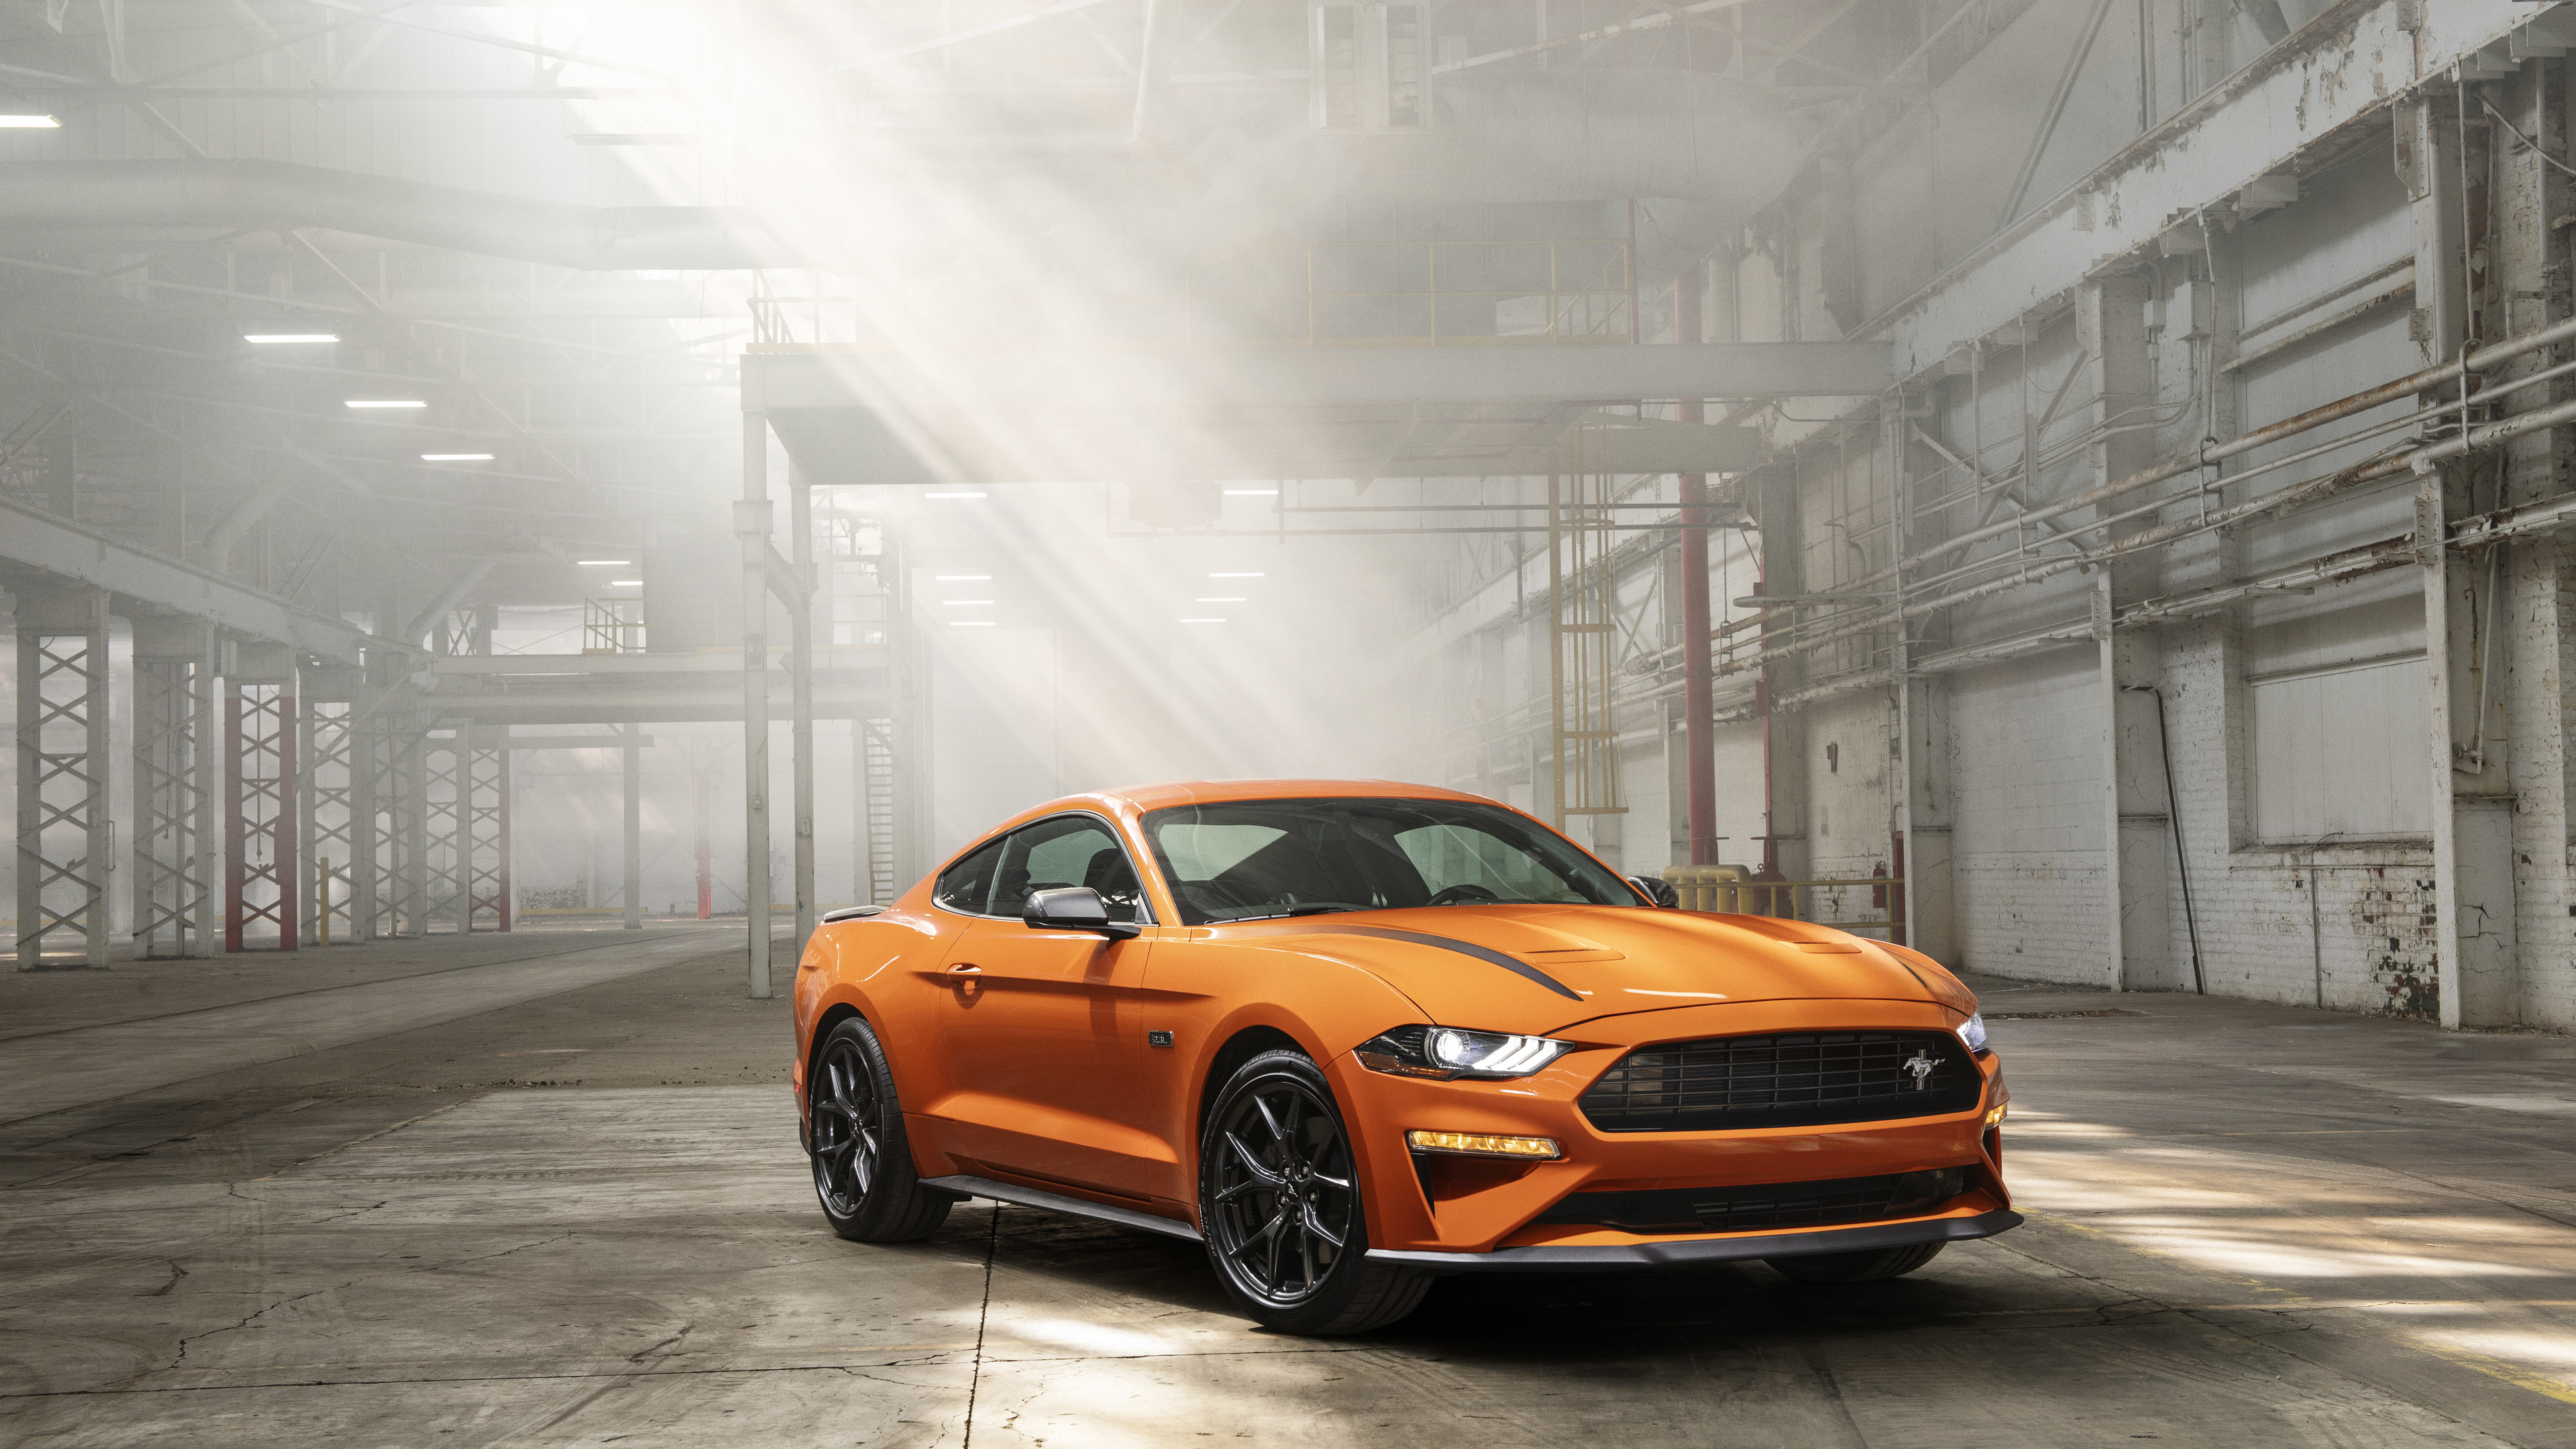 2020 ford mustang ecoboost high performance package 4k 1556185116 - 2020 Ford Mustang EcoBoost High Performance Package 4k - hd-wallpapers, ford mustang wallpapers, cars wallpapers, 5k wallpapers, 4k-wallpapers, 2020 cars wallpapers